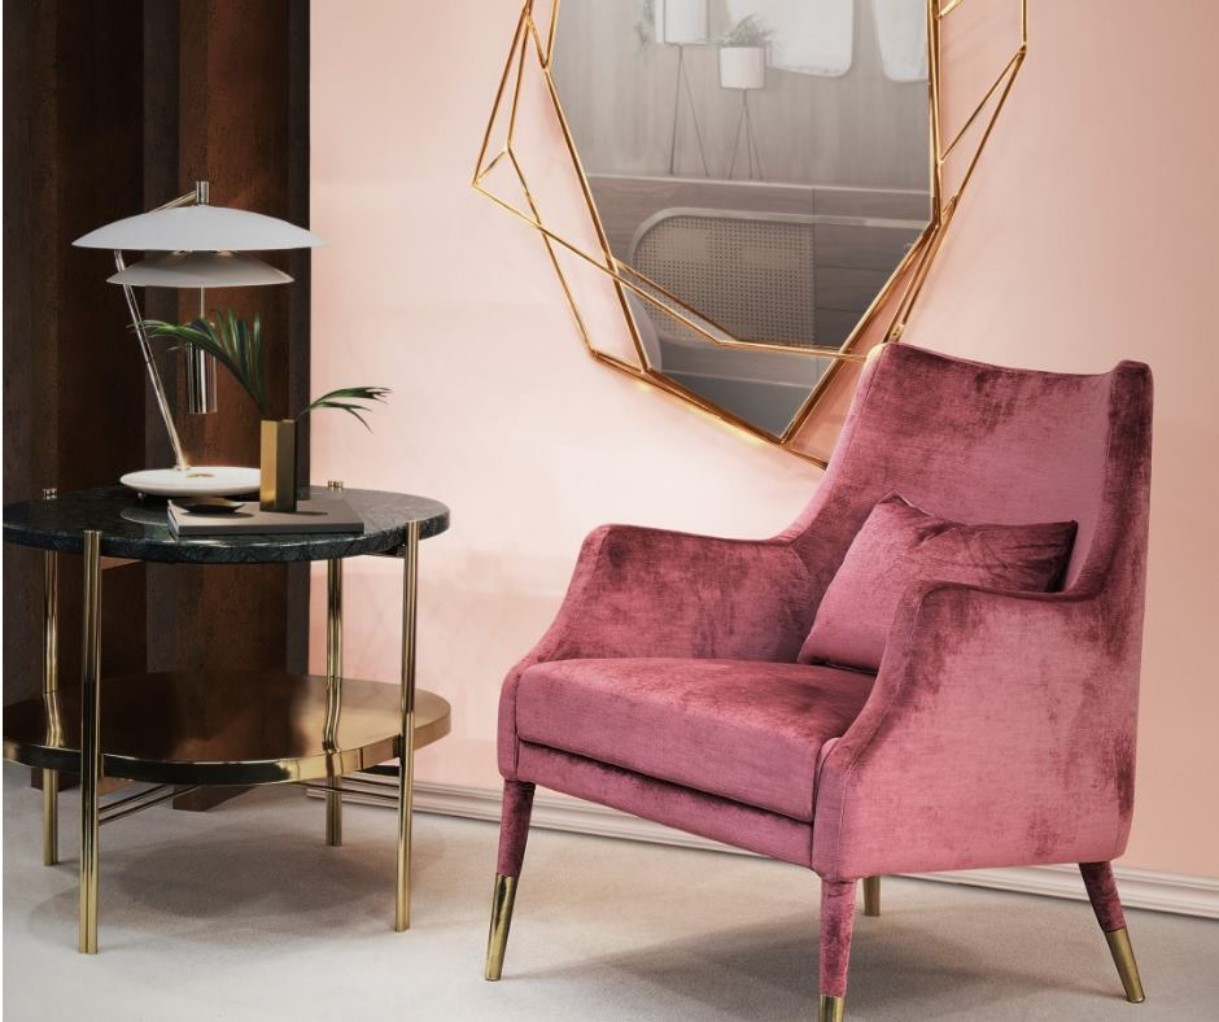 Cloud Pink: Feel in Heaven With a New Soft Home Décor!